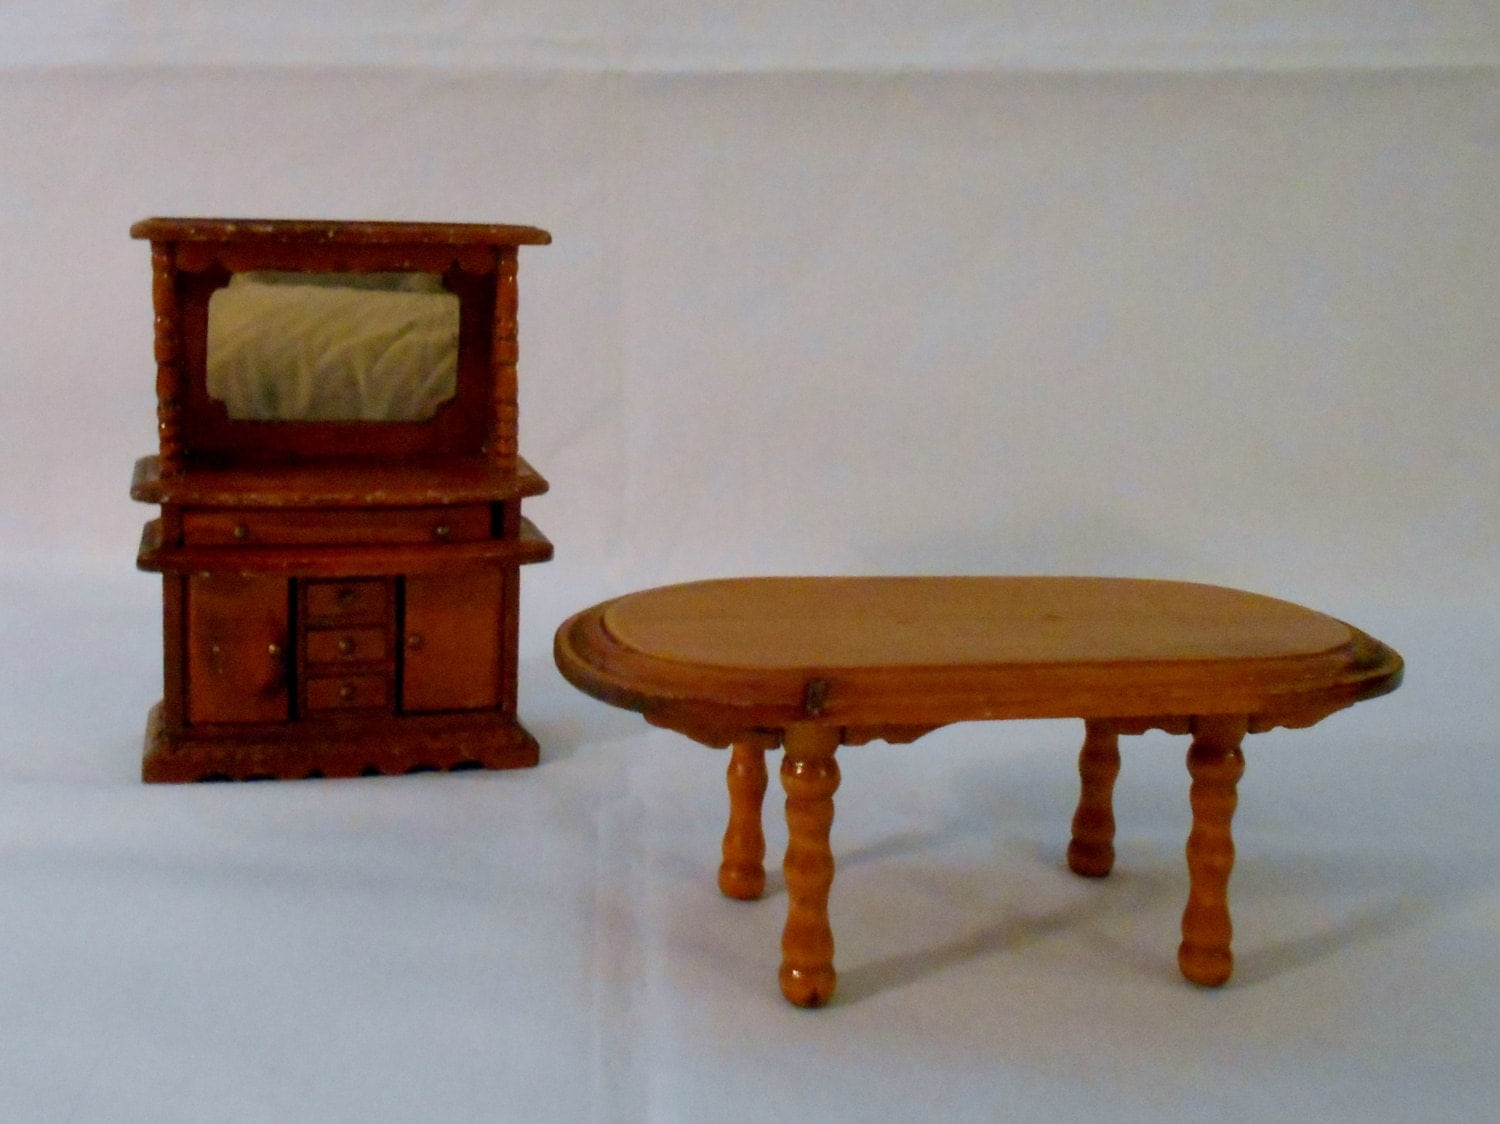 Lighting Dollhouse wooden furniture